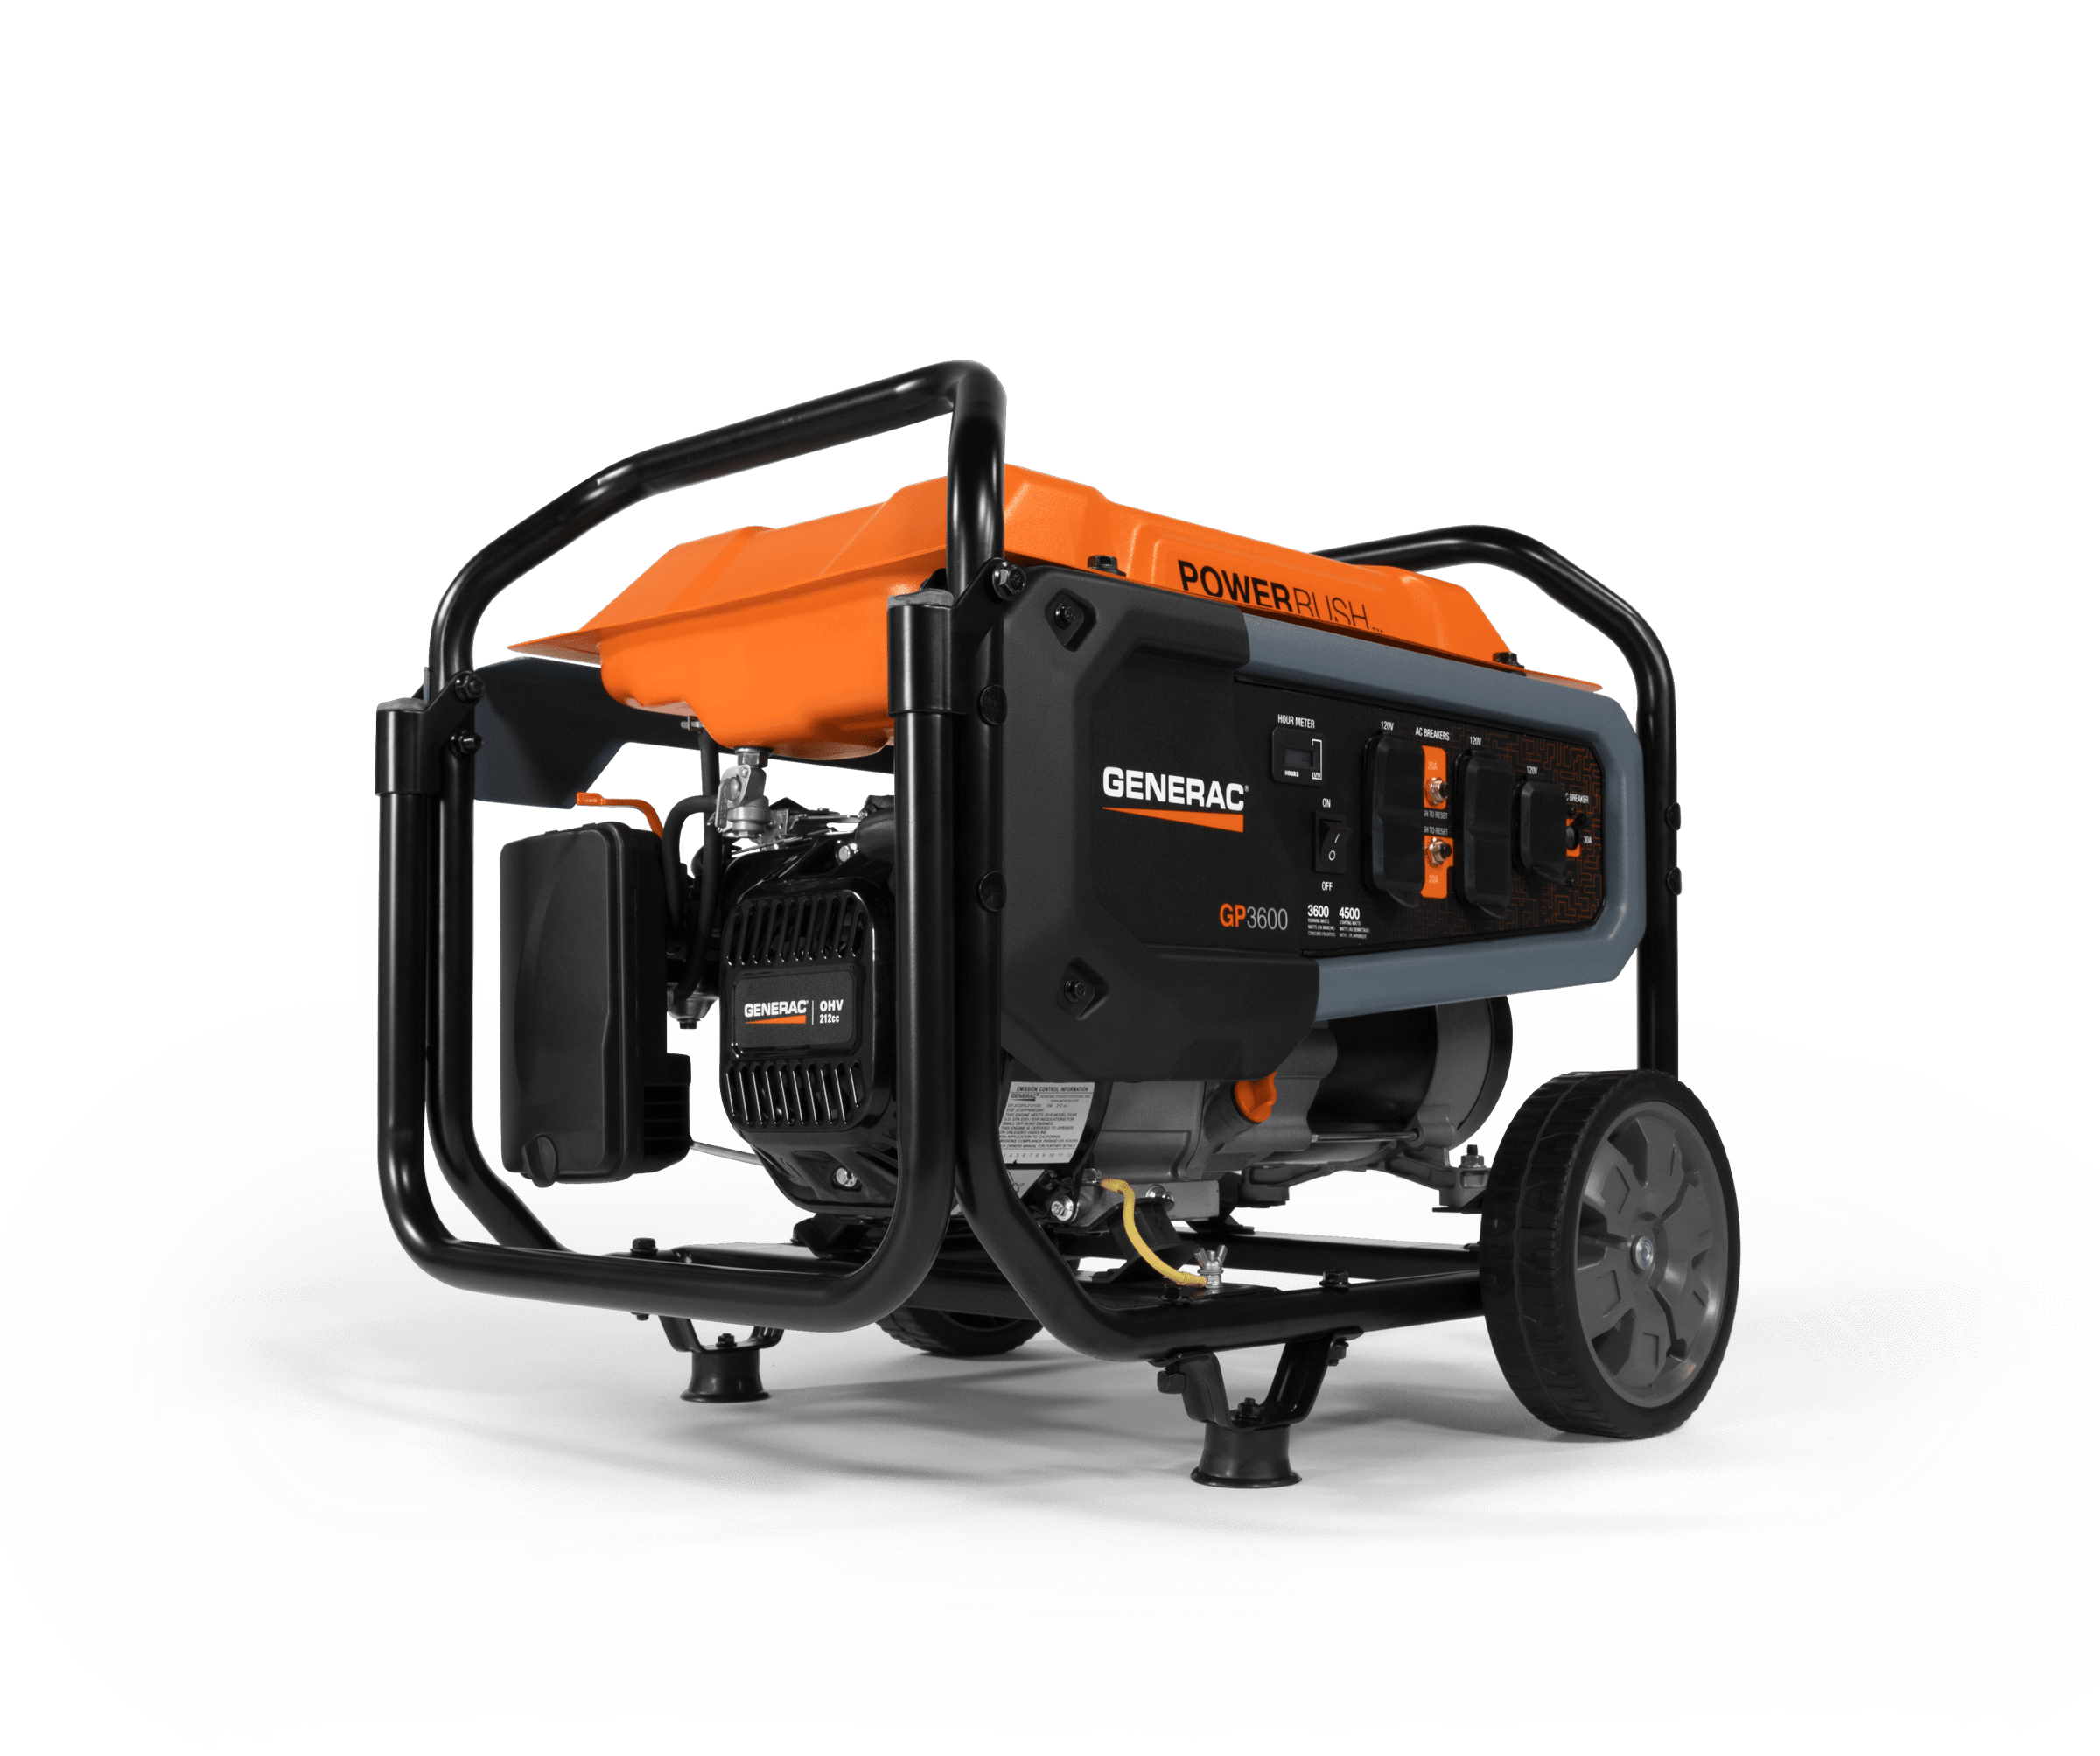 medium resolution of generac power systems gp series portable generators power 92961 generac portable generator 2400 watt wiring diagram